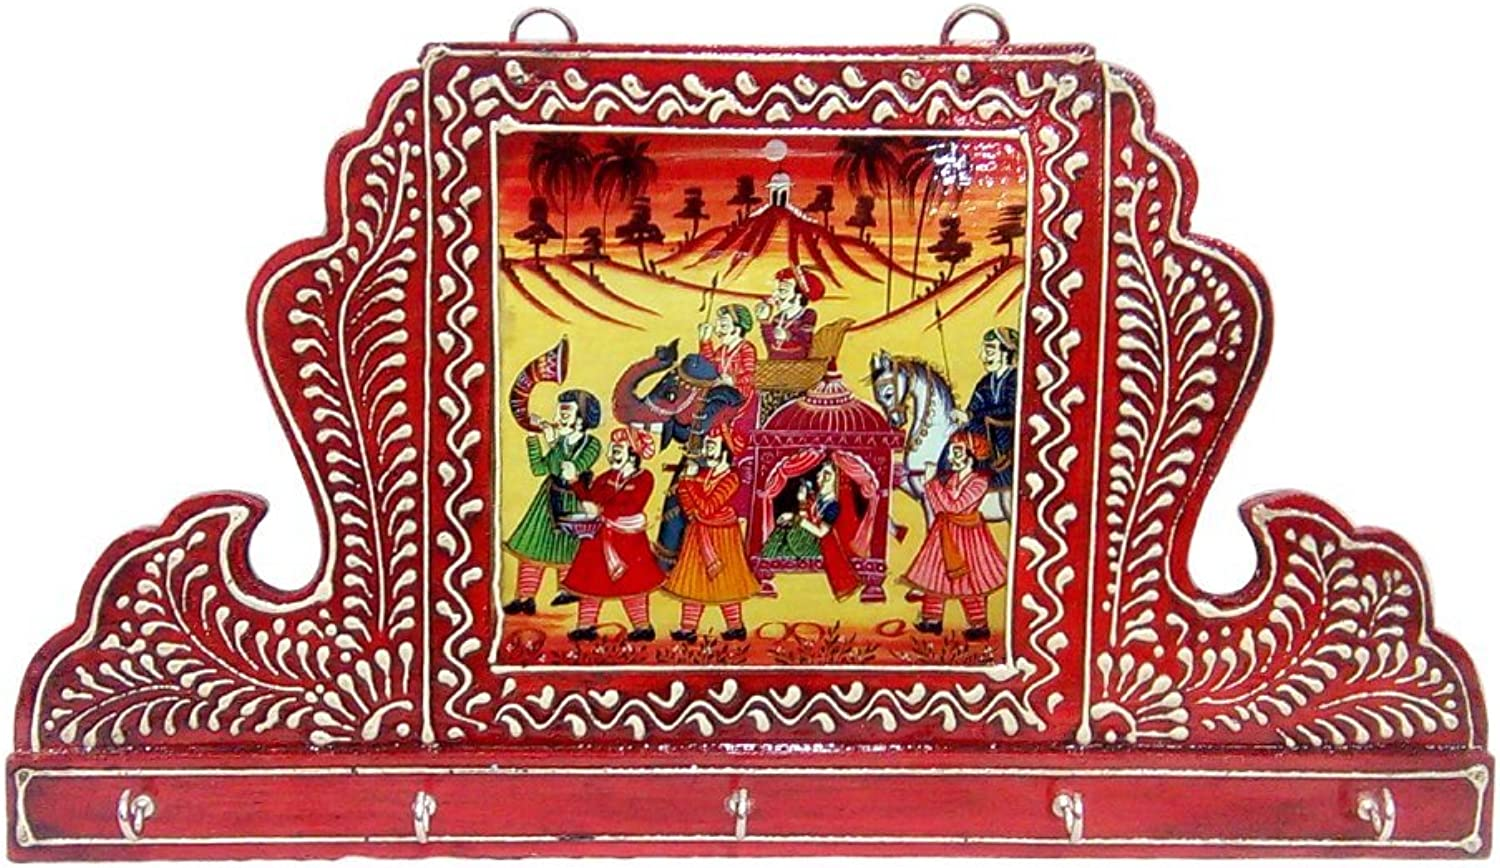 Wooden Rajasthani King Five Key Stand